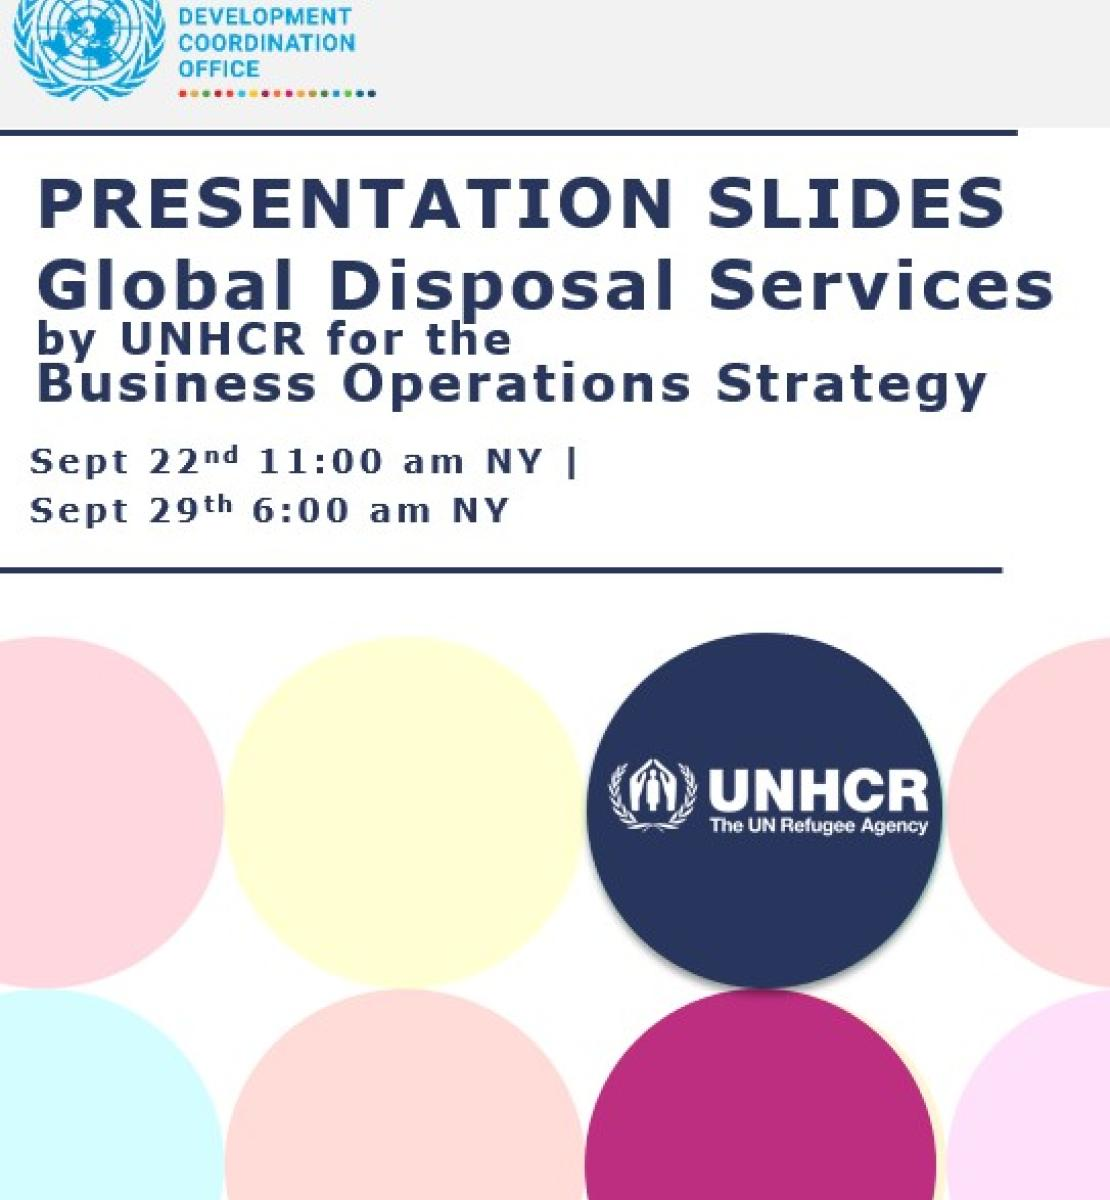 Cover with the title of the document and color circles and the UNSDG and UNHCR logo.